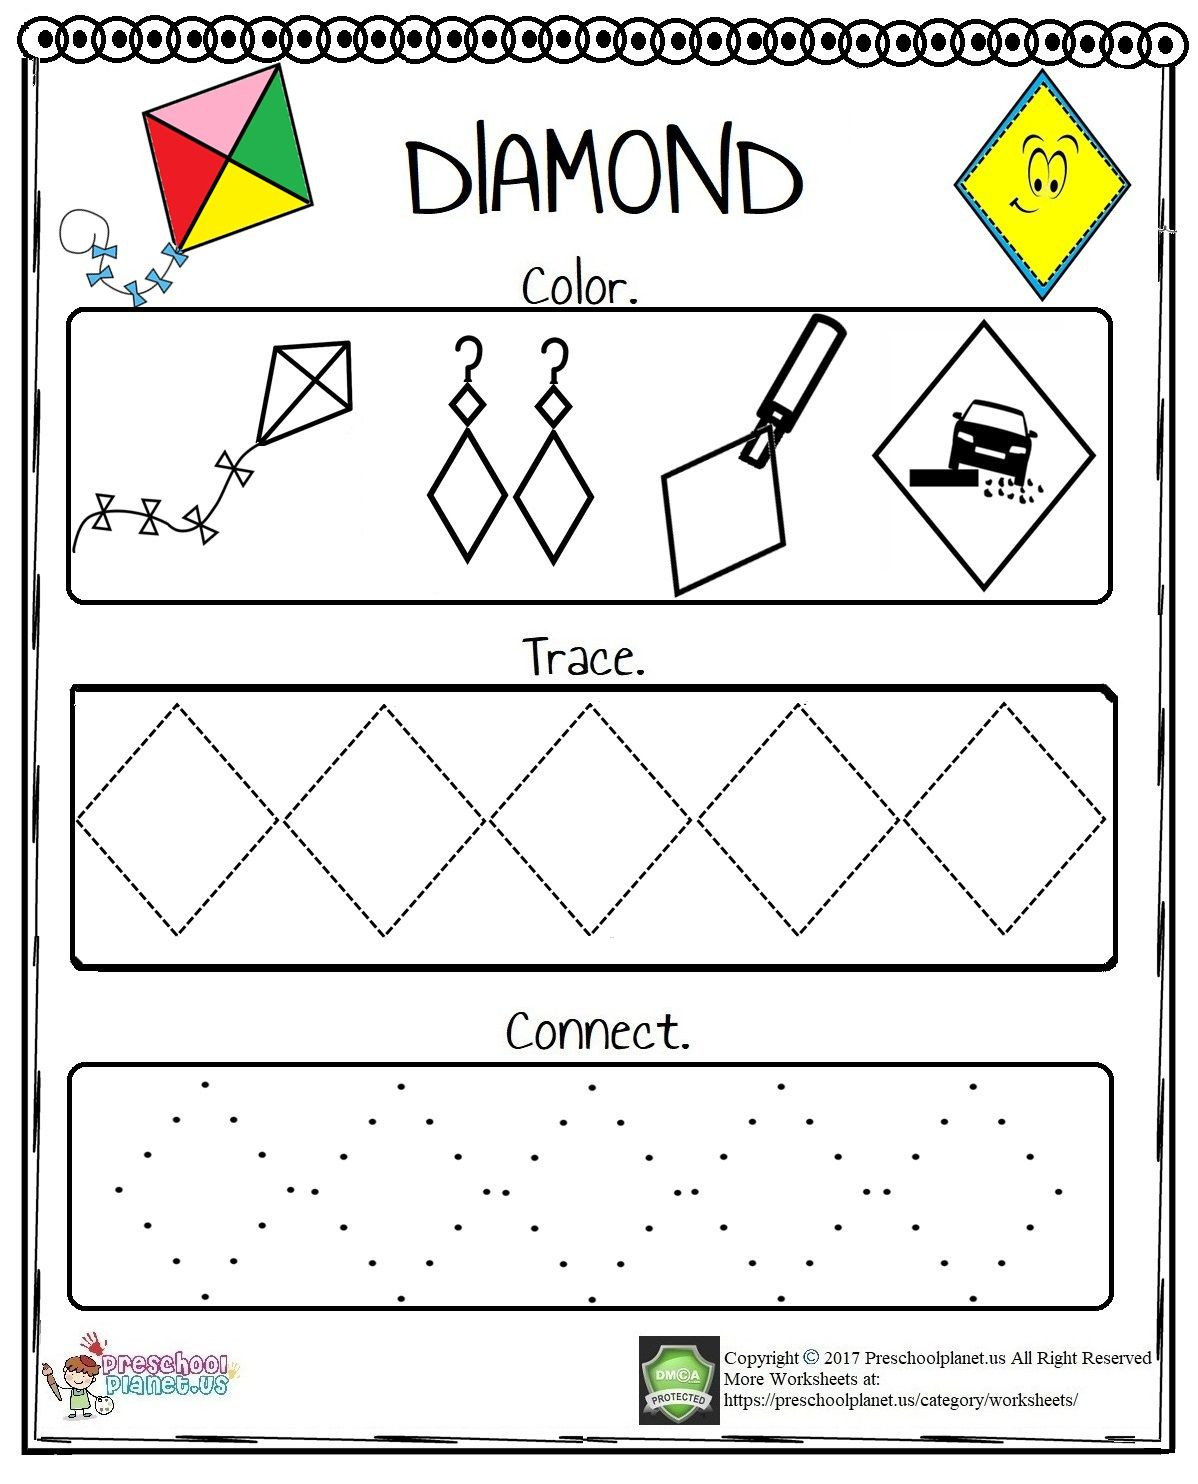 Preschool Diamond Shape Worksheets It is Very Easy to Teach Diamond Shape to Little Ones with